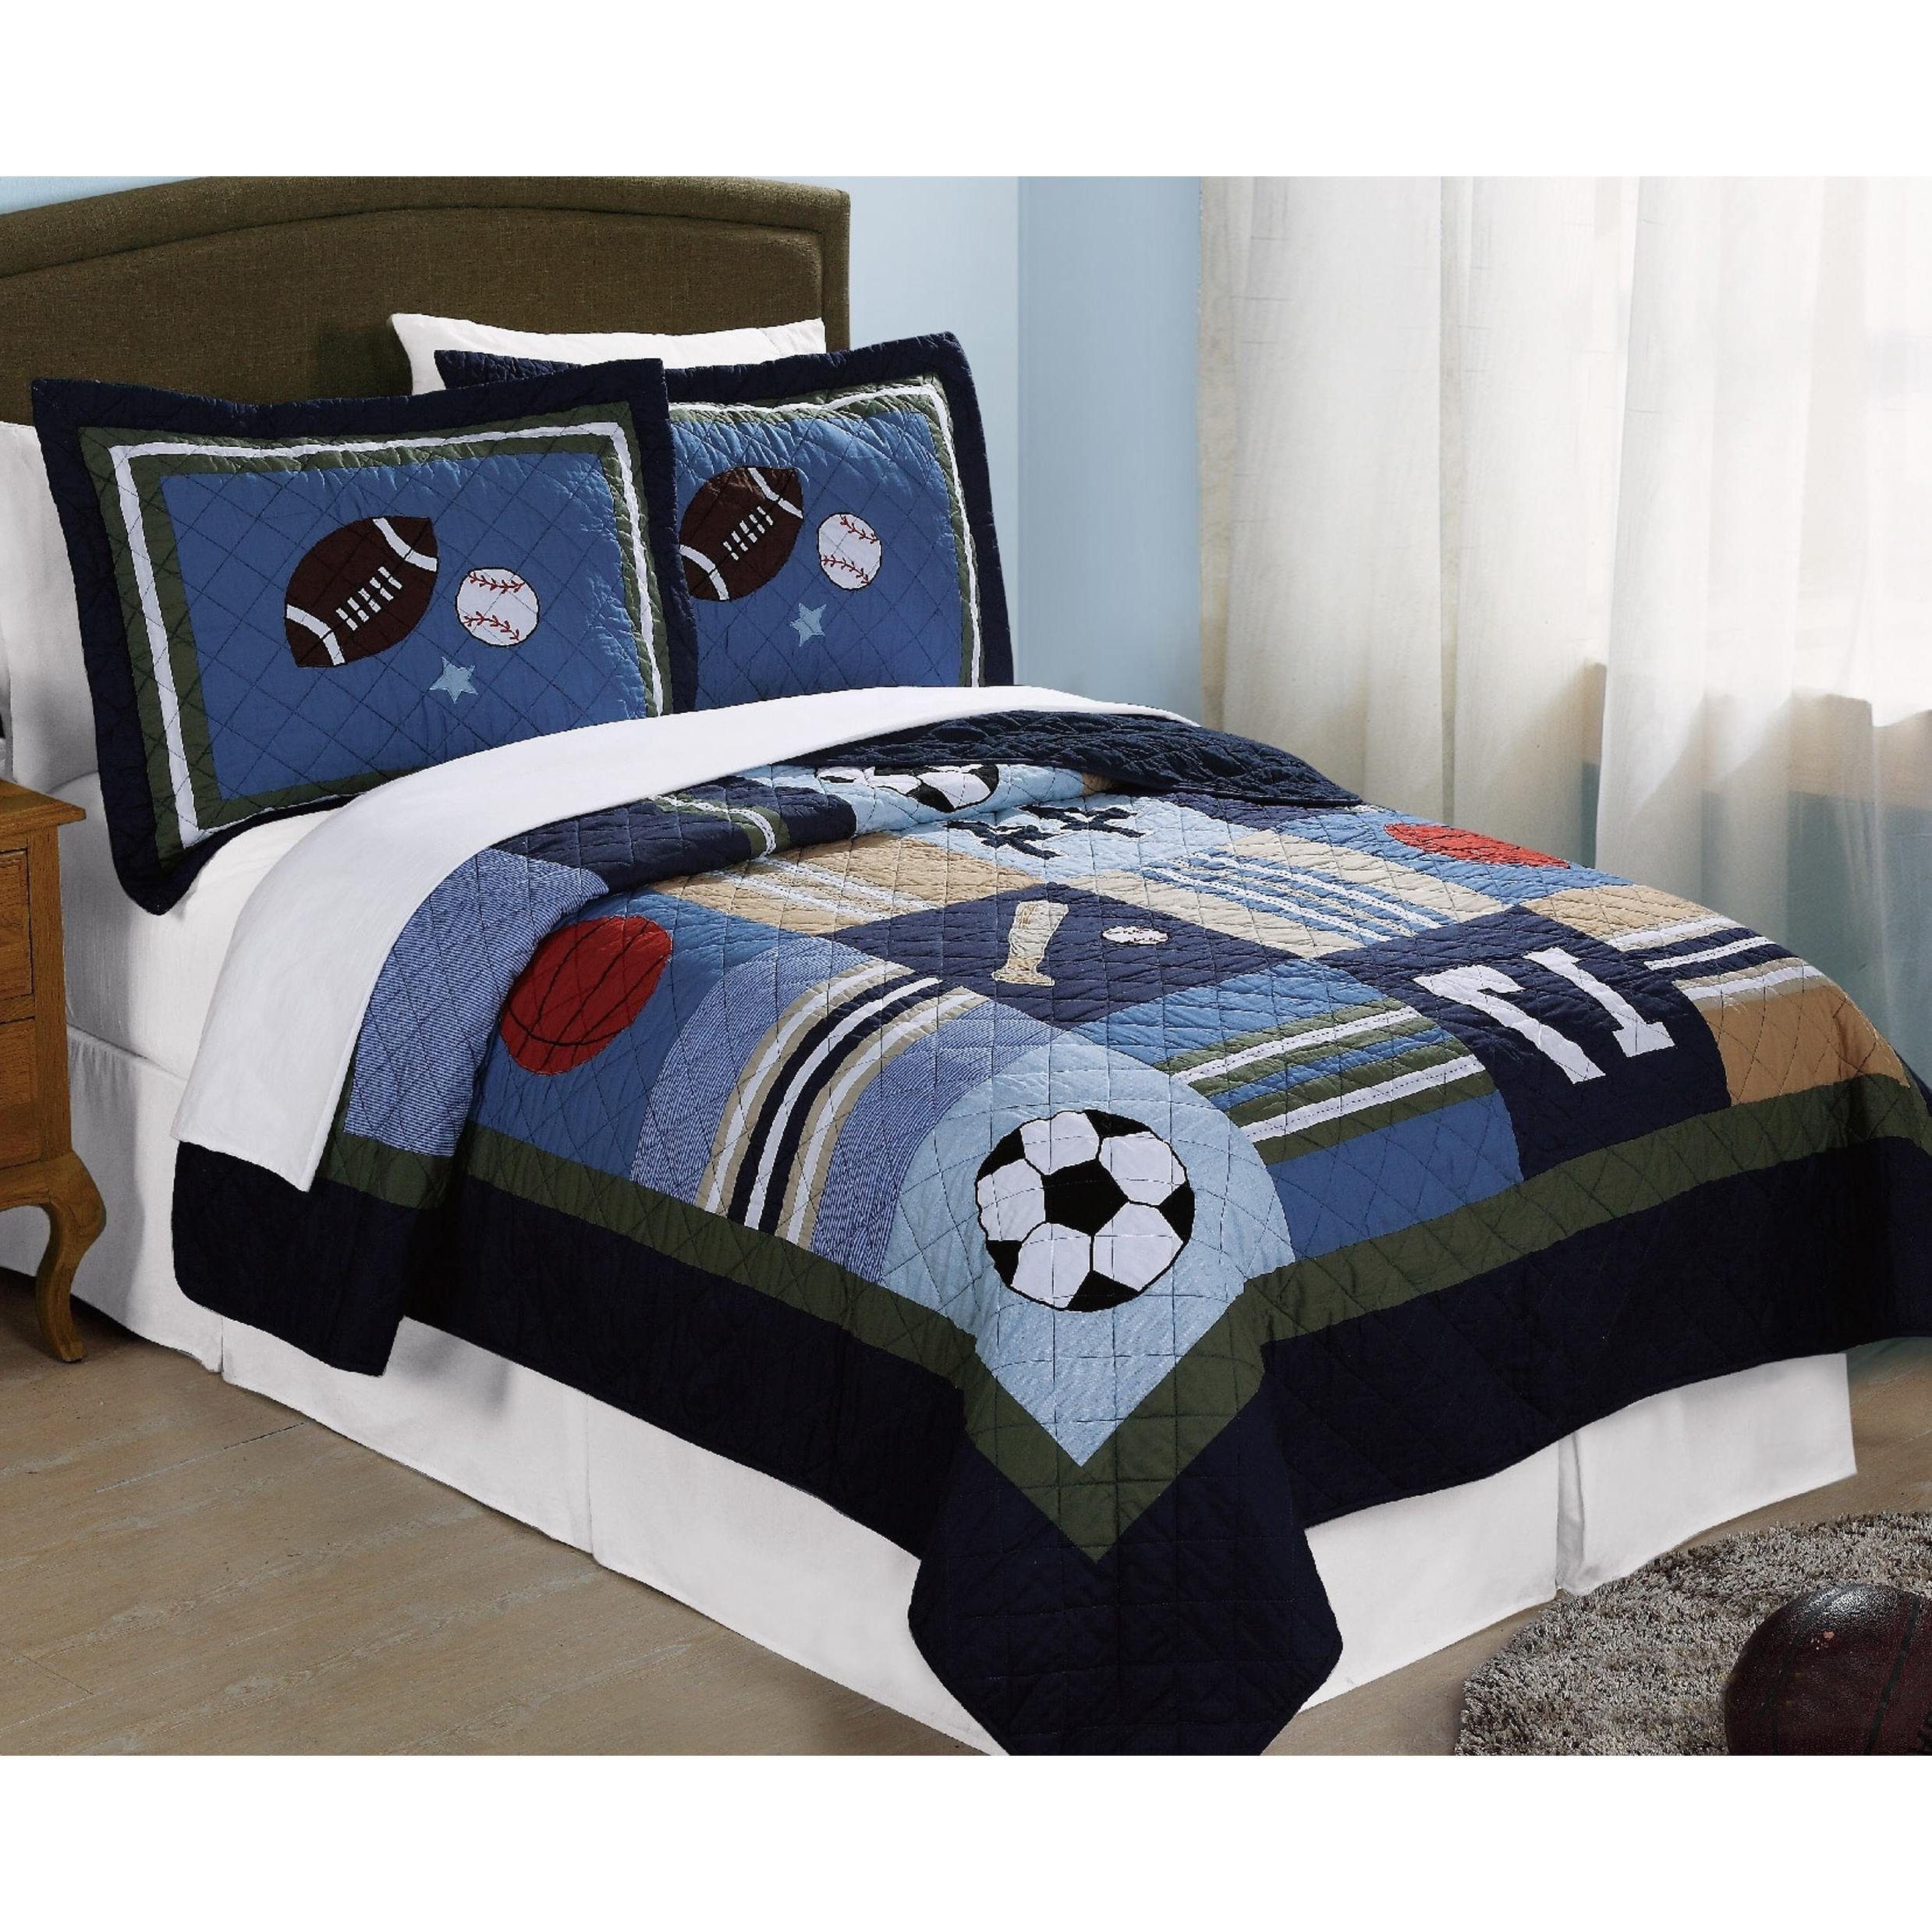 3 Piece Kids Full Queen Size Blue Sport Theme Patchwork Quilt, Grey Red White Basketball Soccer Baseball Football Stars, Active Activity Squares Horizontal Stripes, Sports, Cotton